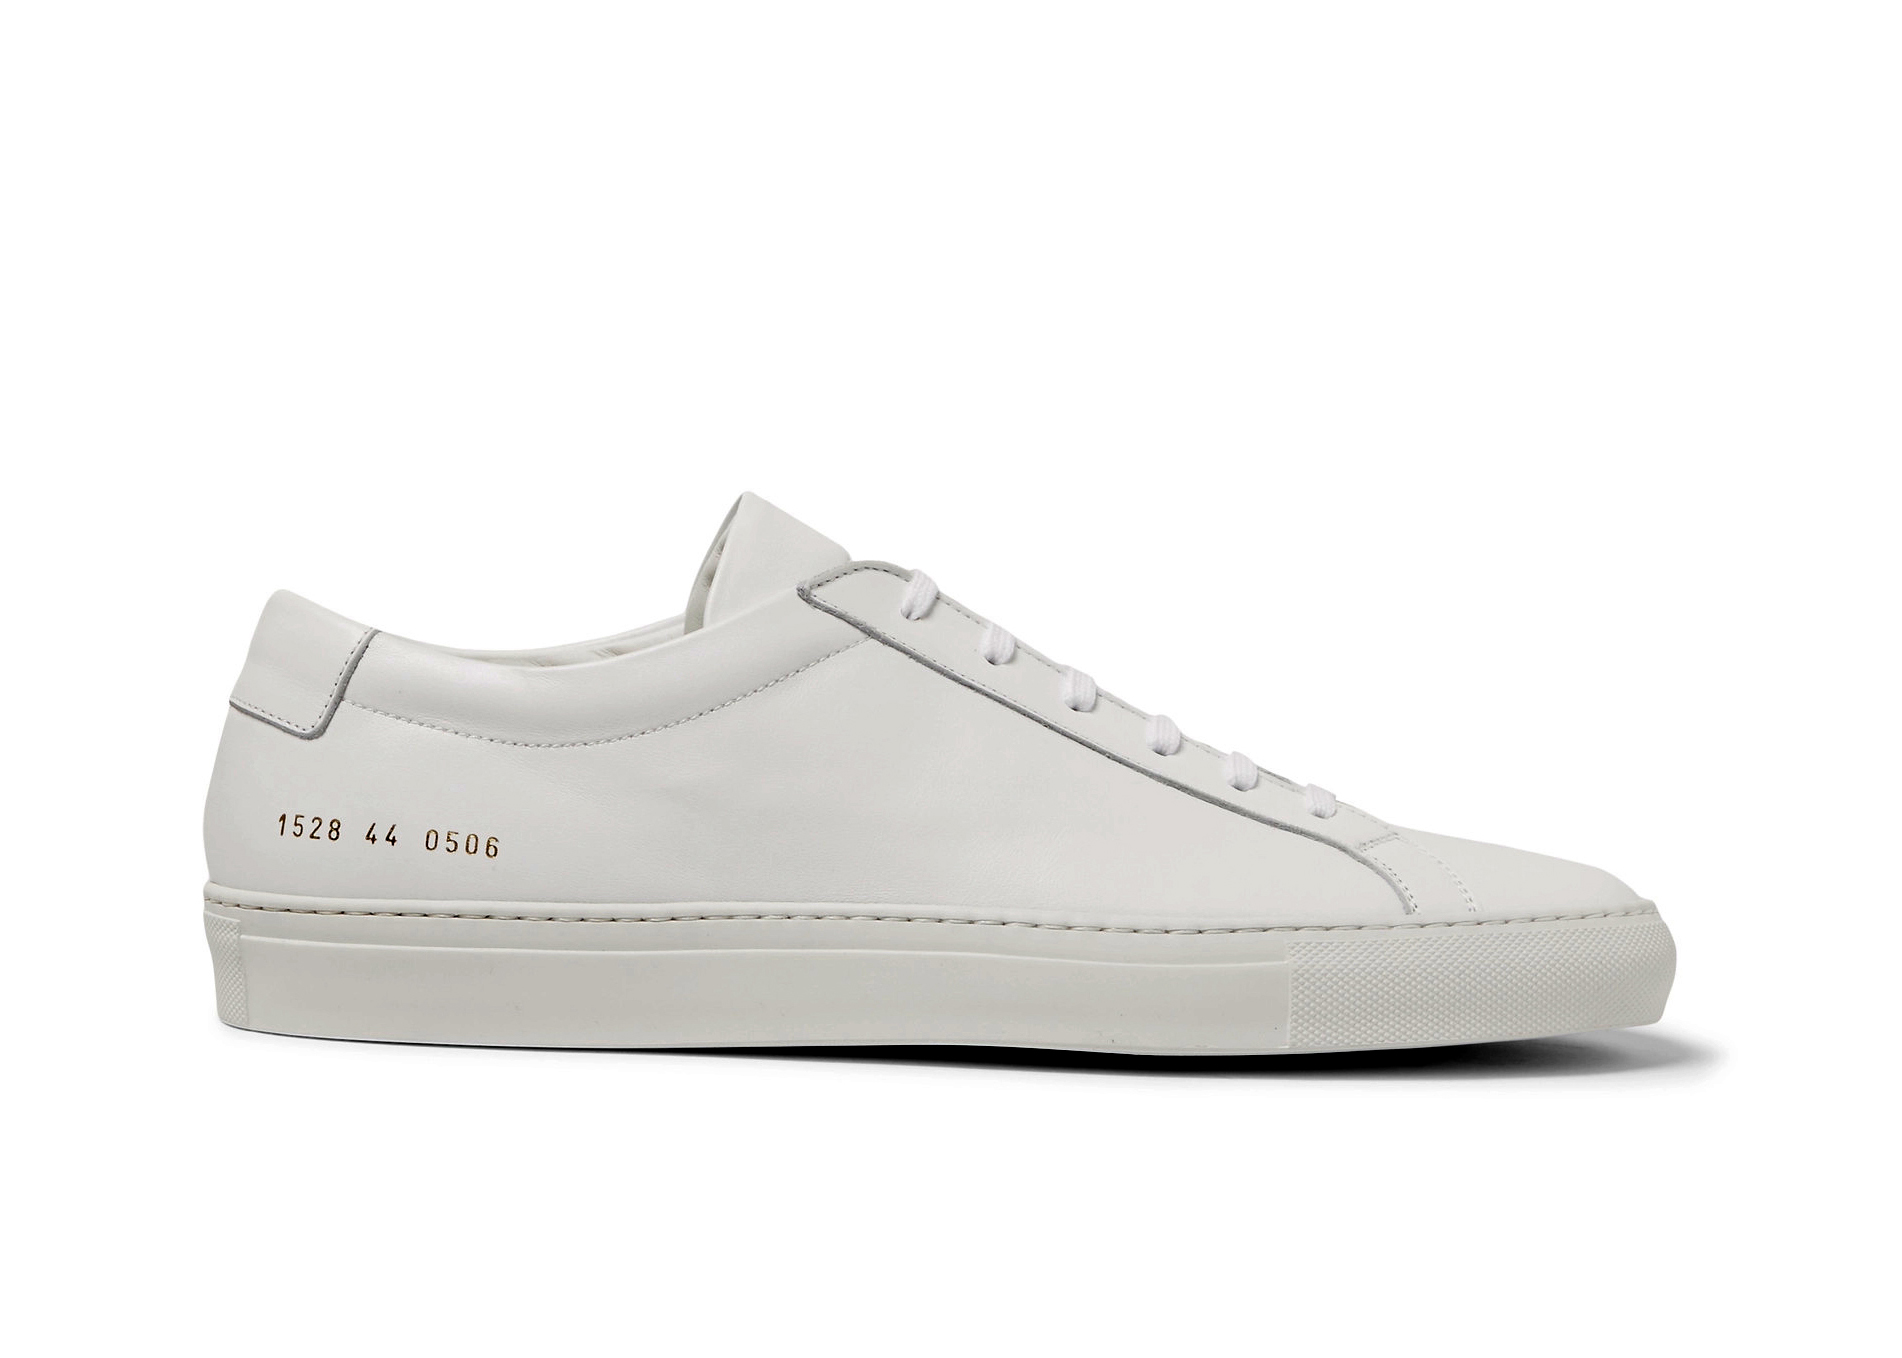 Common Projects Original Achilles Sneakers; Image Credits: Common Projects